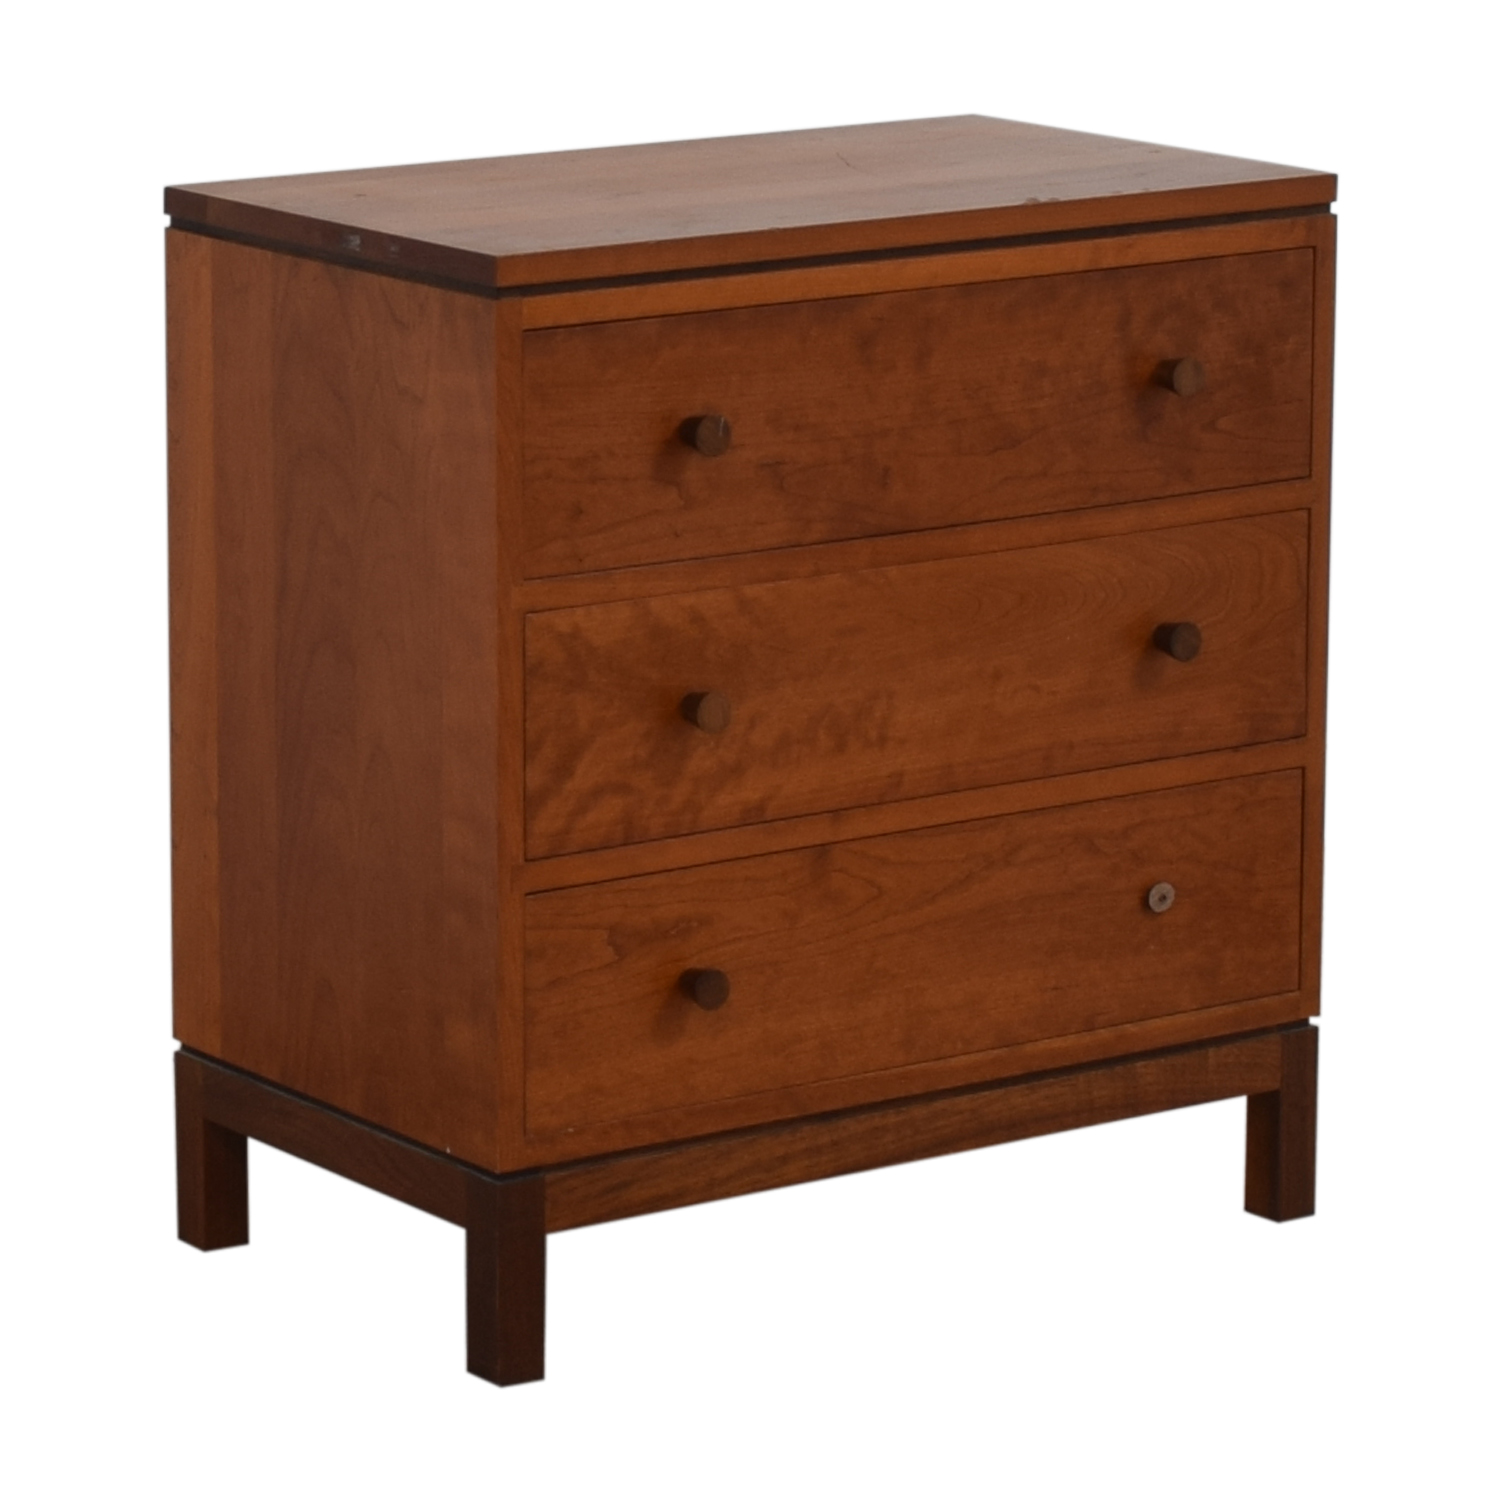 Stickley Furniture Stickley Furniture Shaker Style Dresser on sale